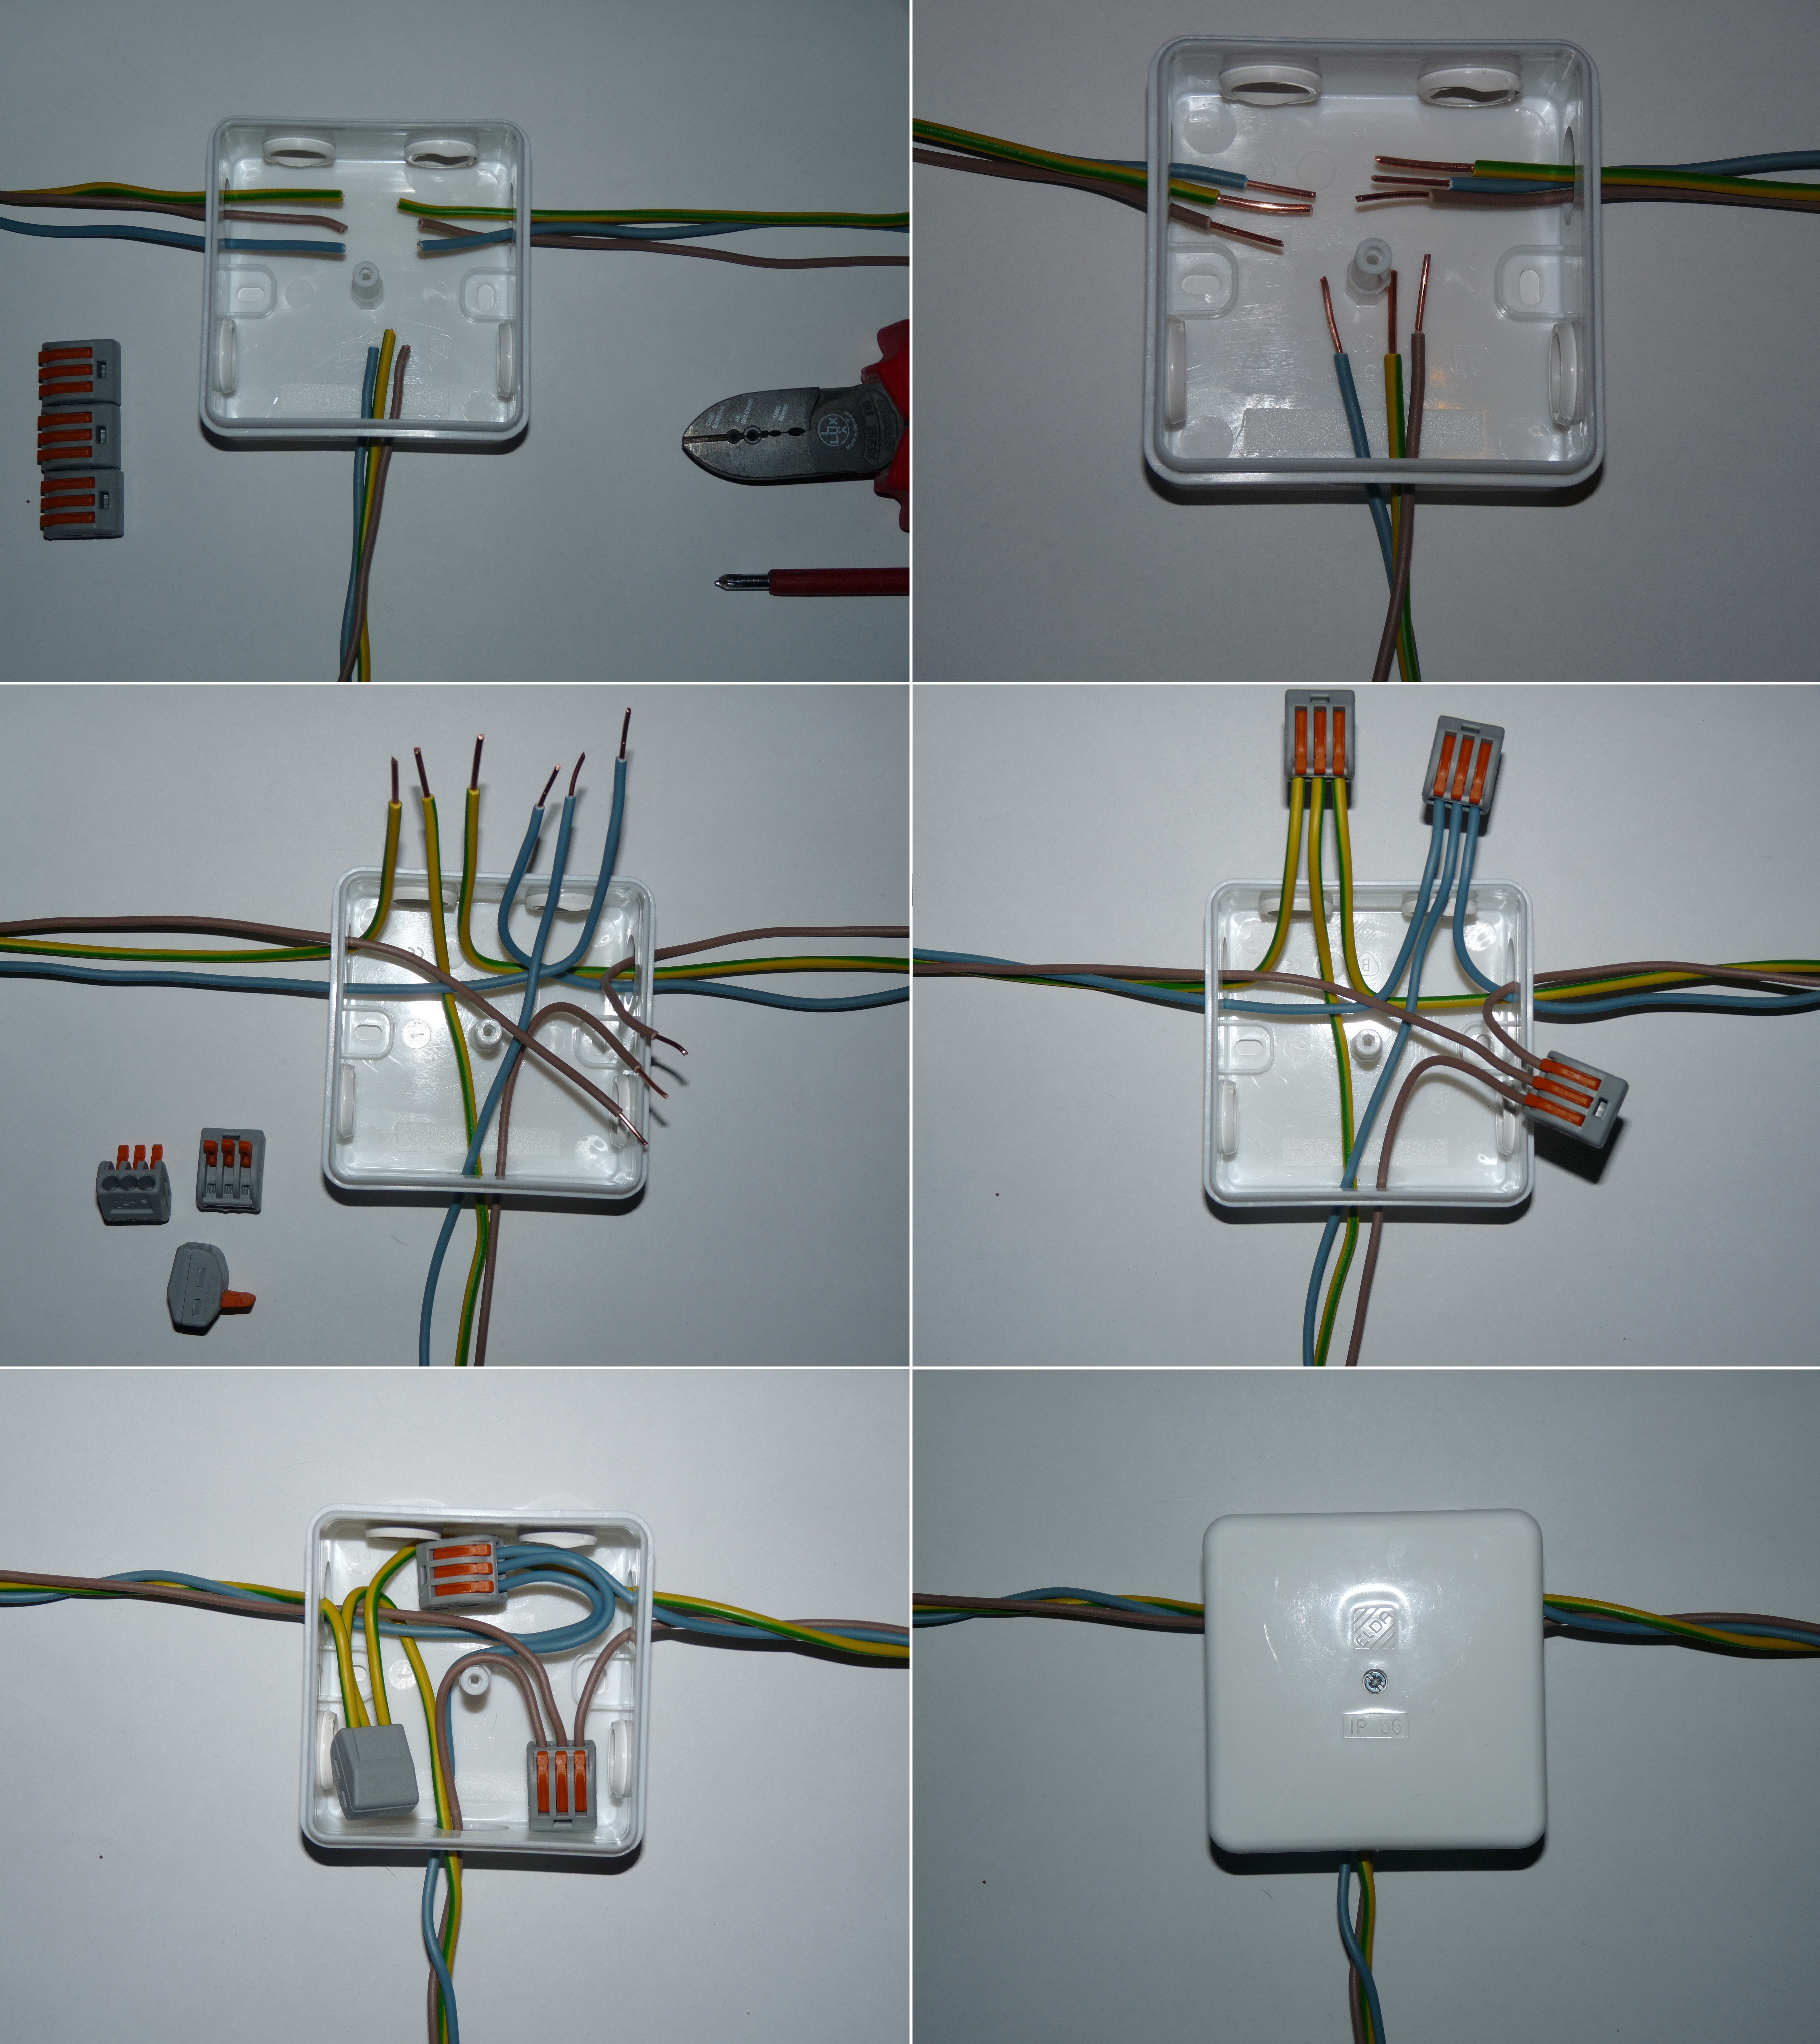 Tremendous File External Junction Box With Wago 222 Terminals Jpg Wikimedia Wiring Database Gramgelartorg